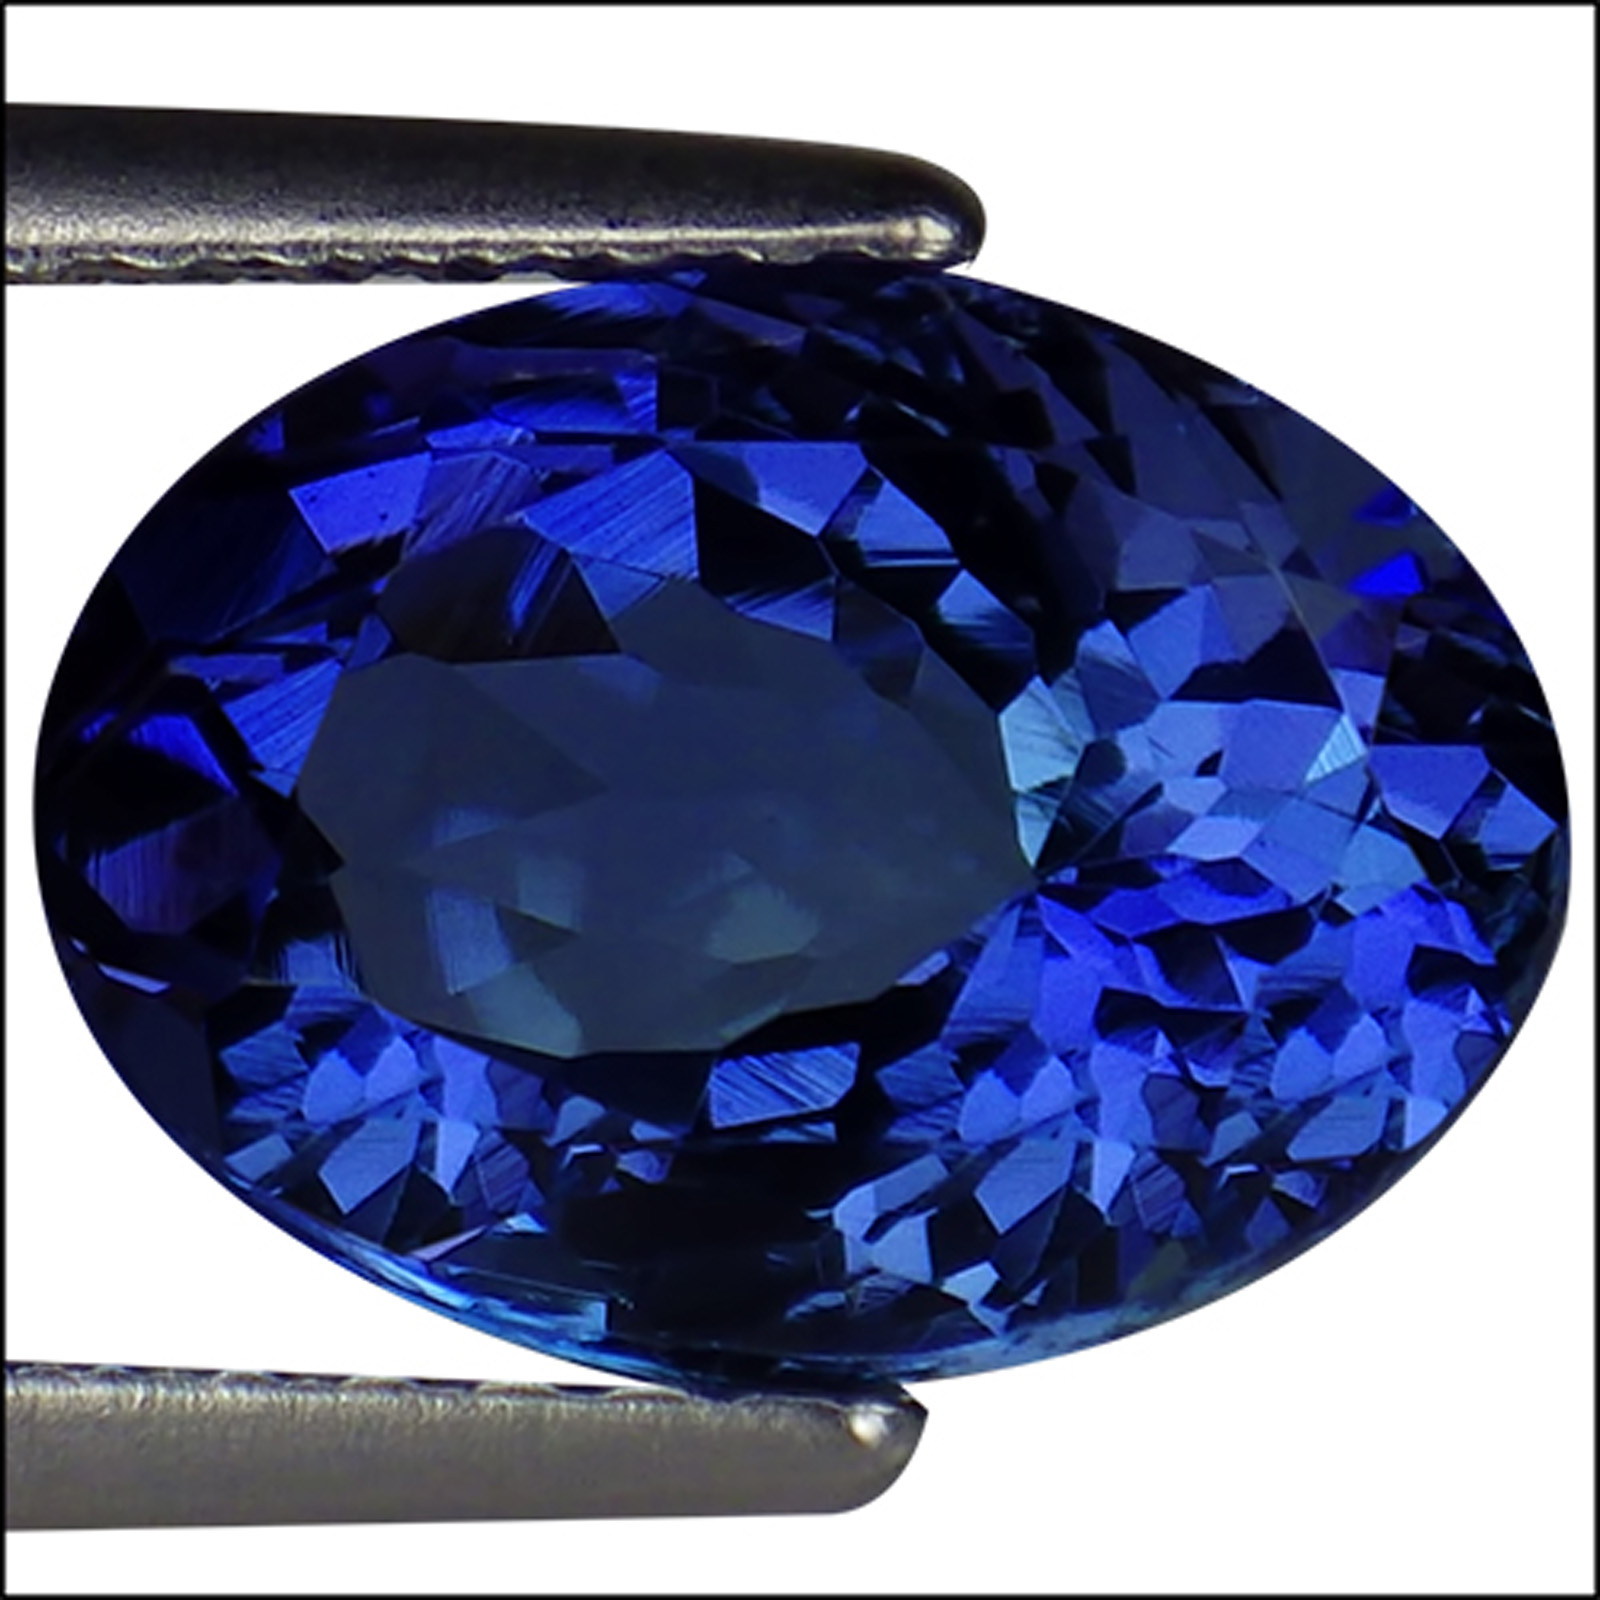 gold investment uk qvc ring aaa grade tanzanite cut cushion product